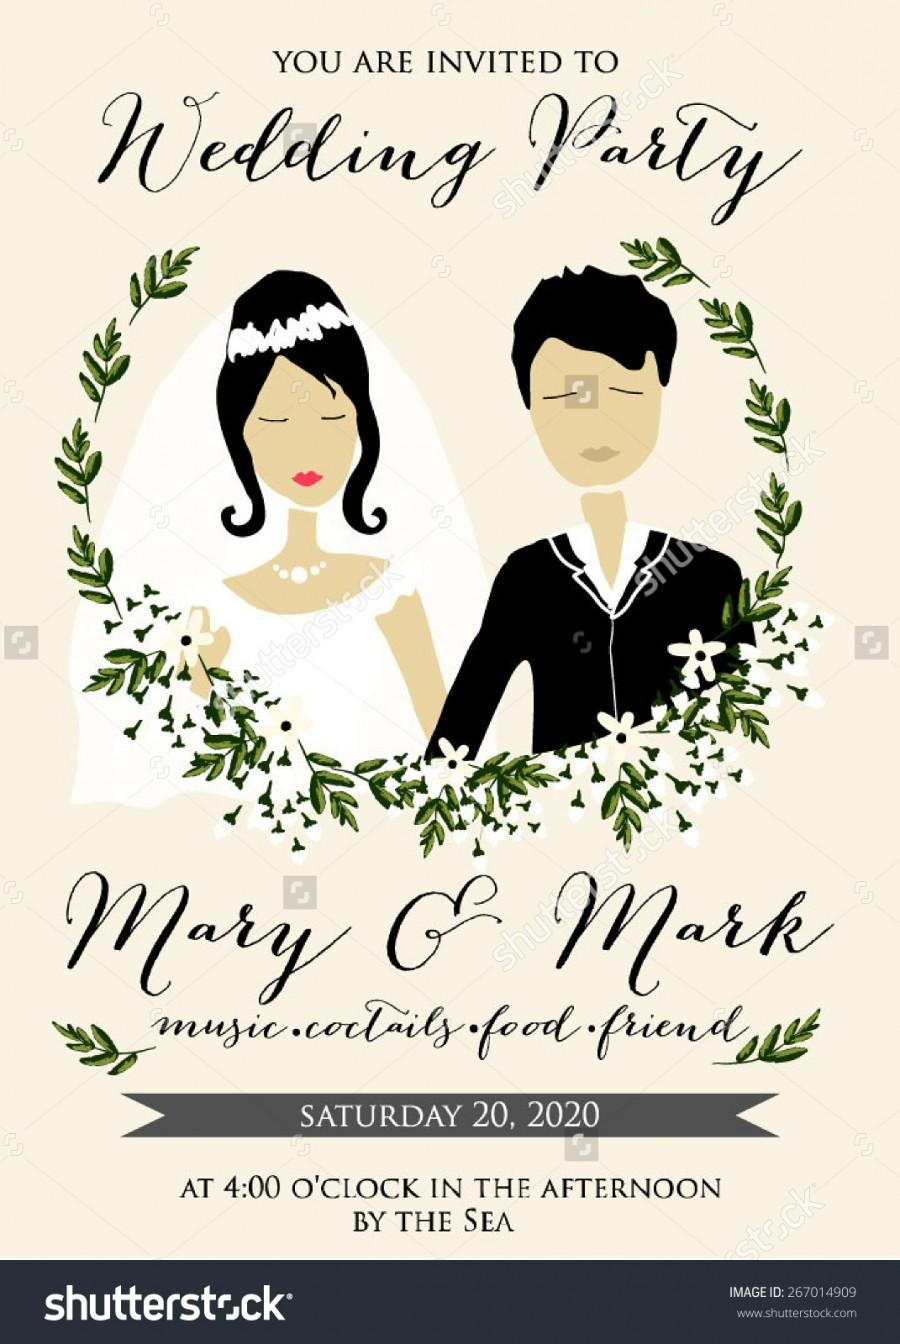 Get Couple Cartoon Wedding Invitations Wallpapers